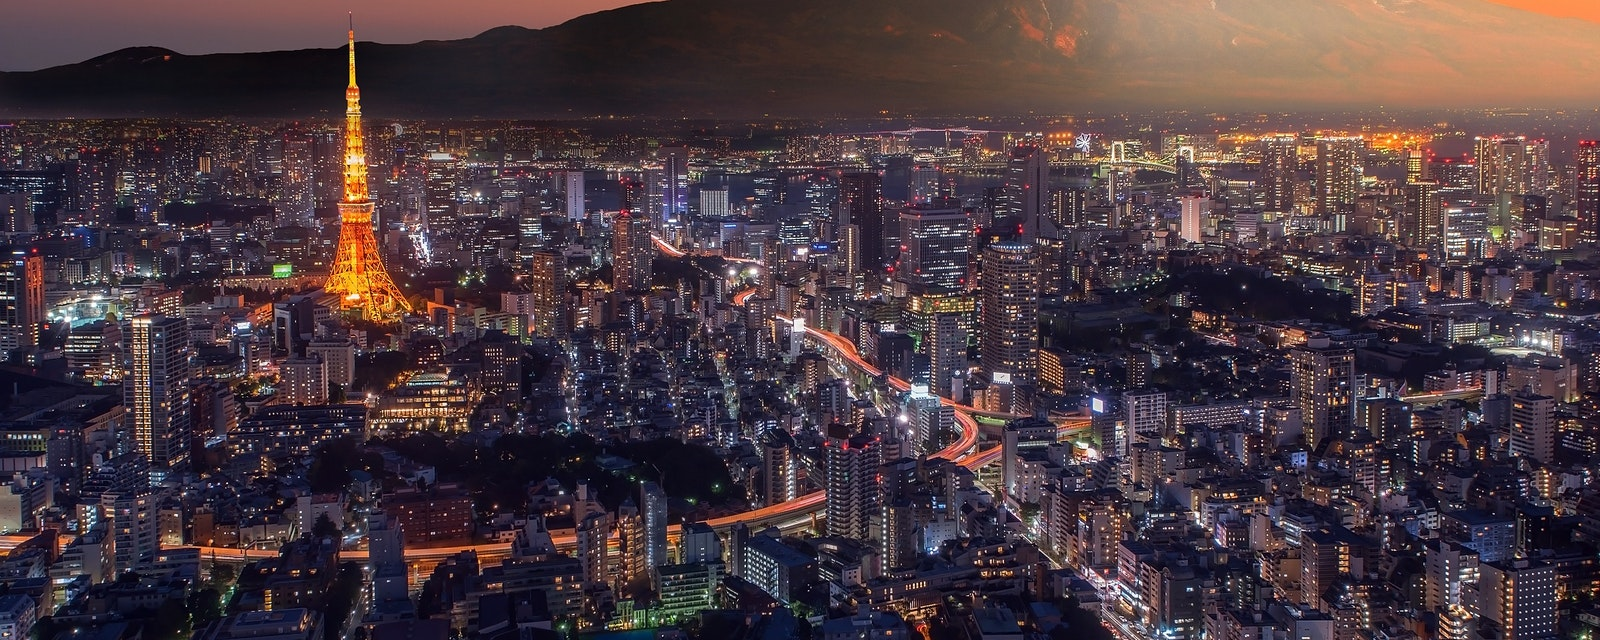 Retouch,Photo,Of,Tokyo,City,At,Twilight,With,Mt,Fuji